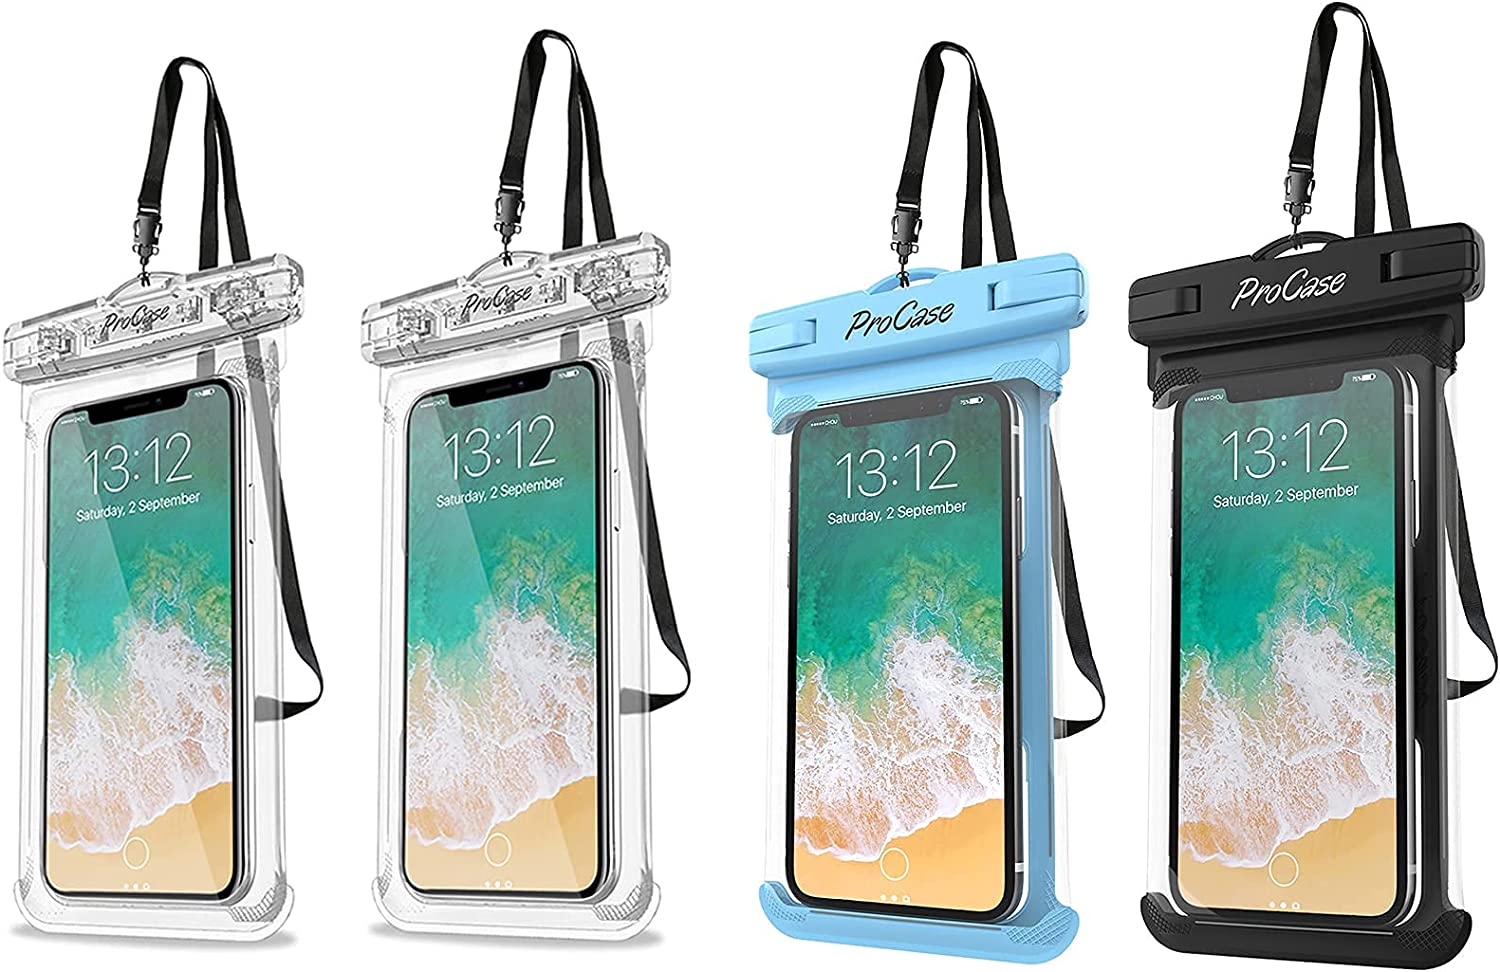 ProCase [2 Pack] Universal Waterproof Pouch Cellphone Dry Bag Case Bundle with [2 Pack] Universal Waterproof Case for Phones up to 7